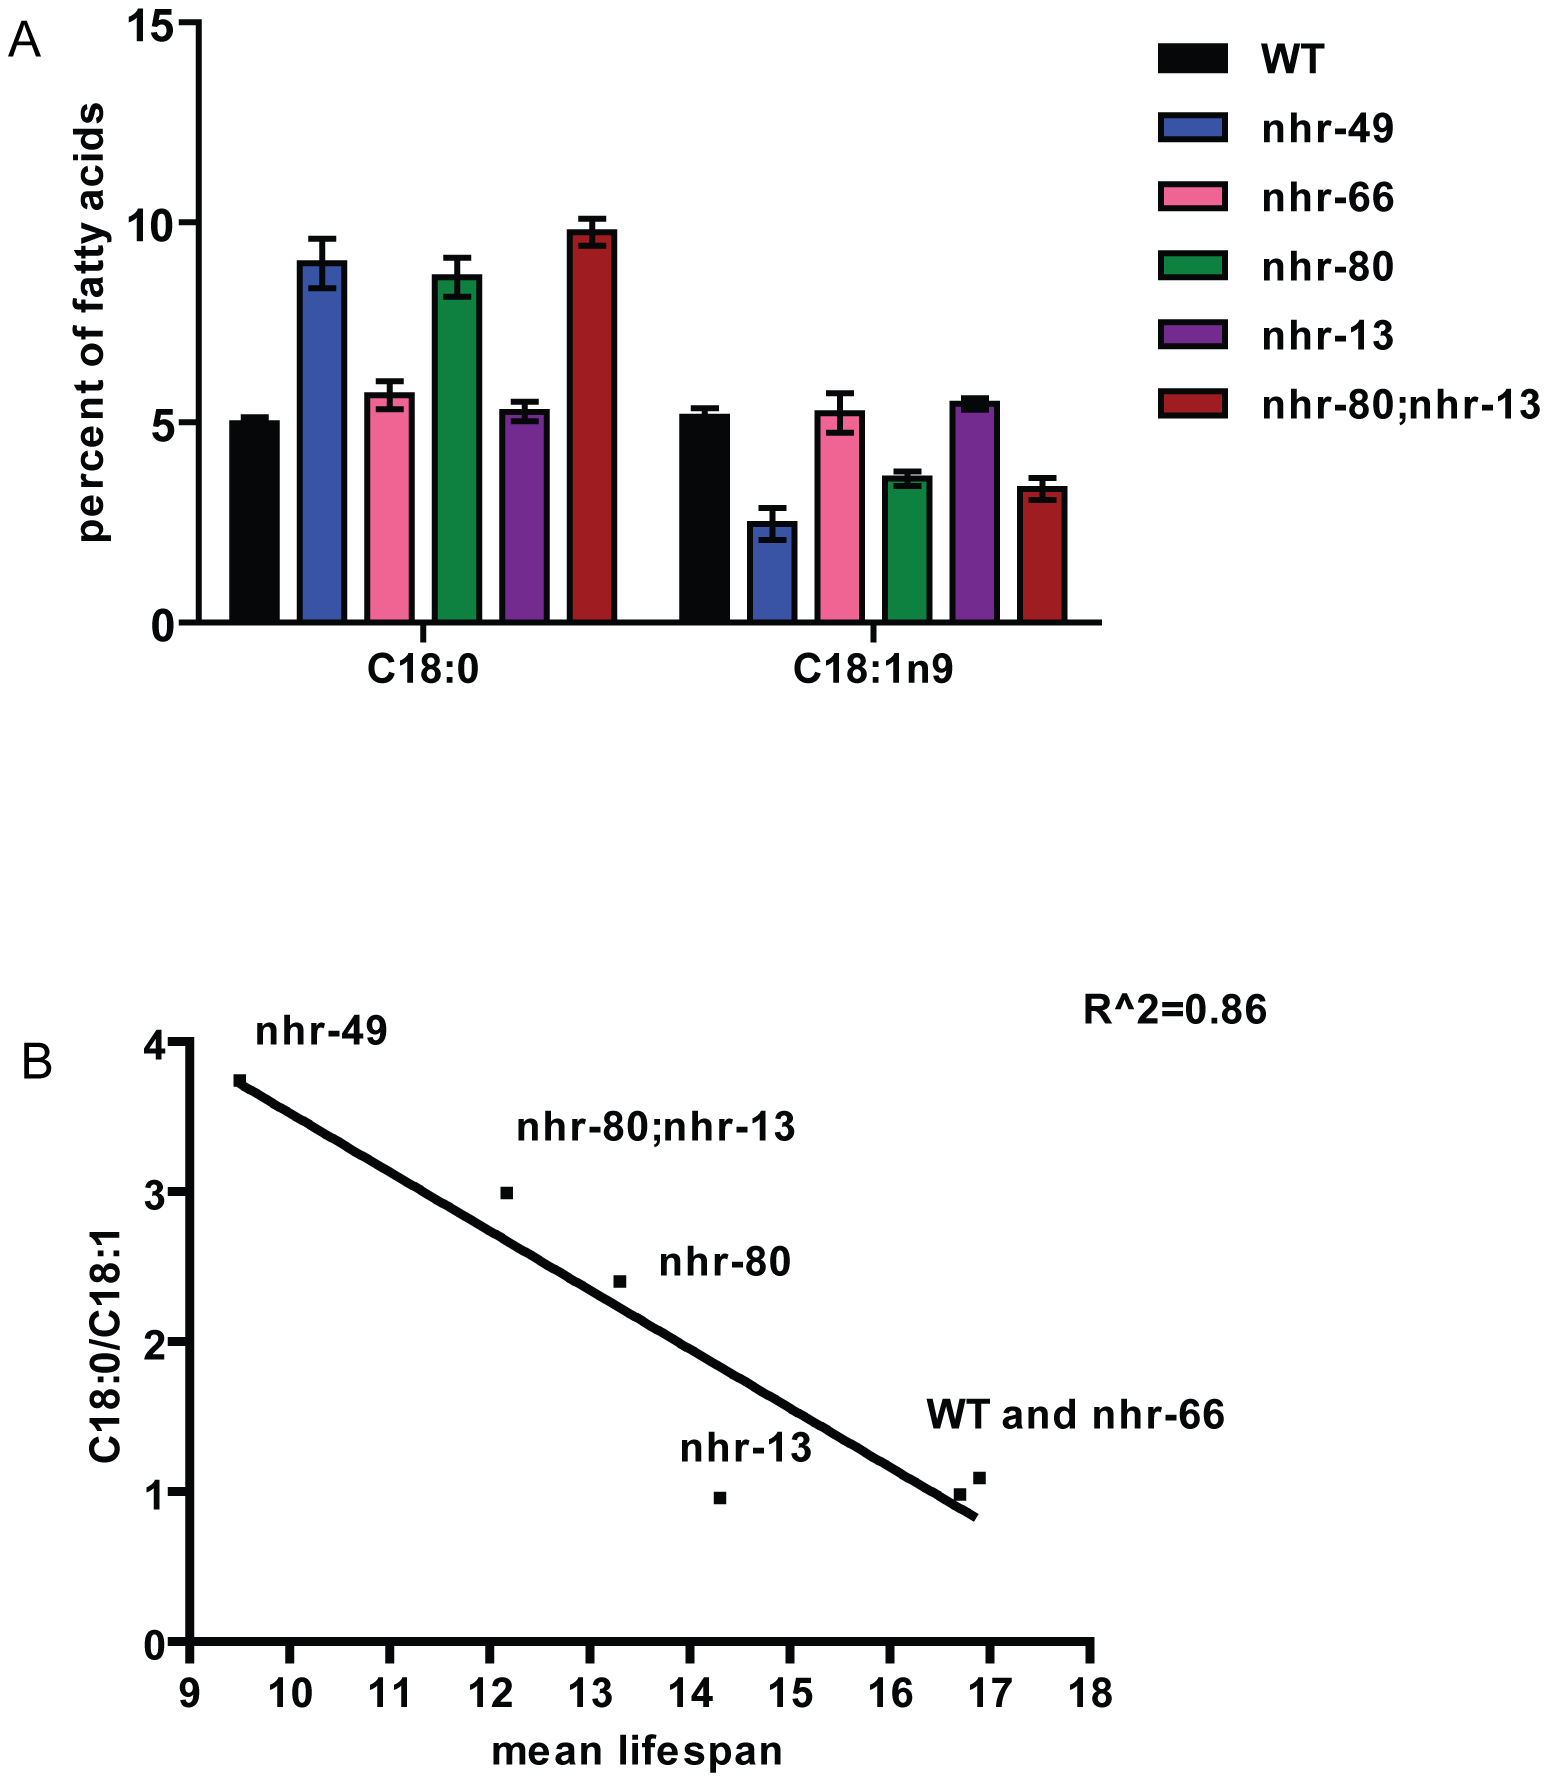 Higher levels of saturated fat in <i>nhr-80;nhr-13</i> and <i>nhr-49</i> animals correlate with shortened lifespans.